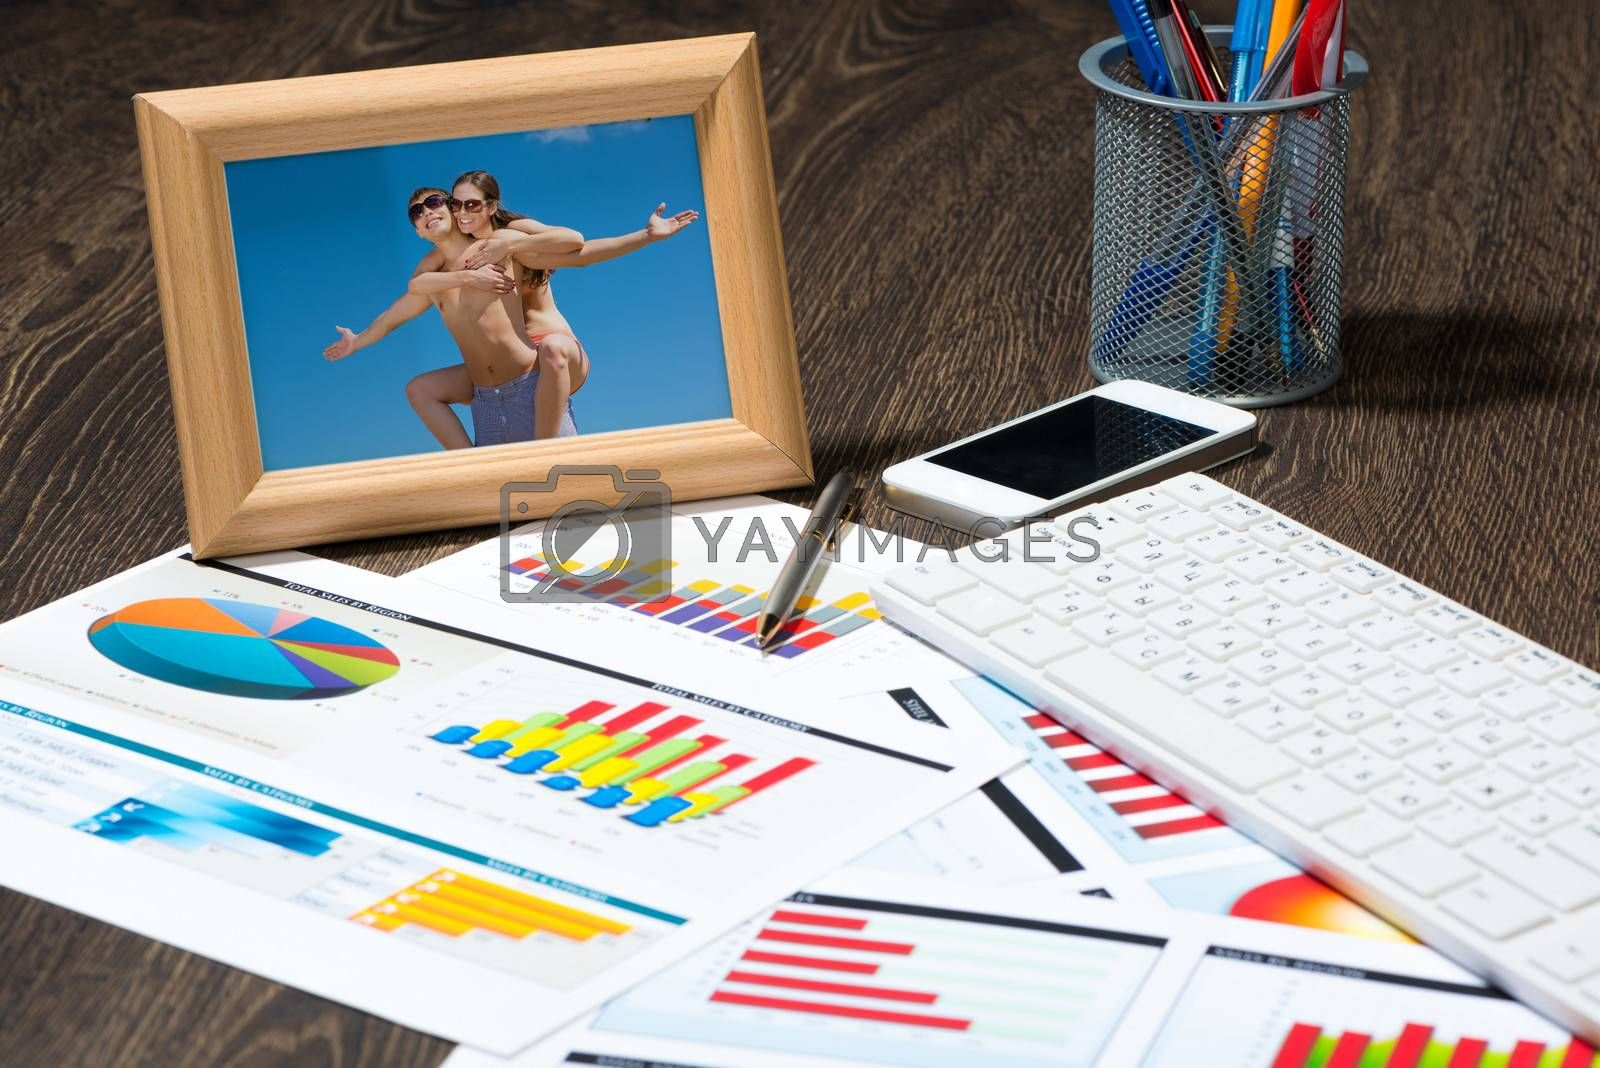 photo frame, business papers with financial charts. Workplace of the businessman.